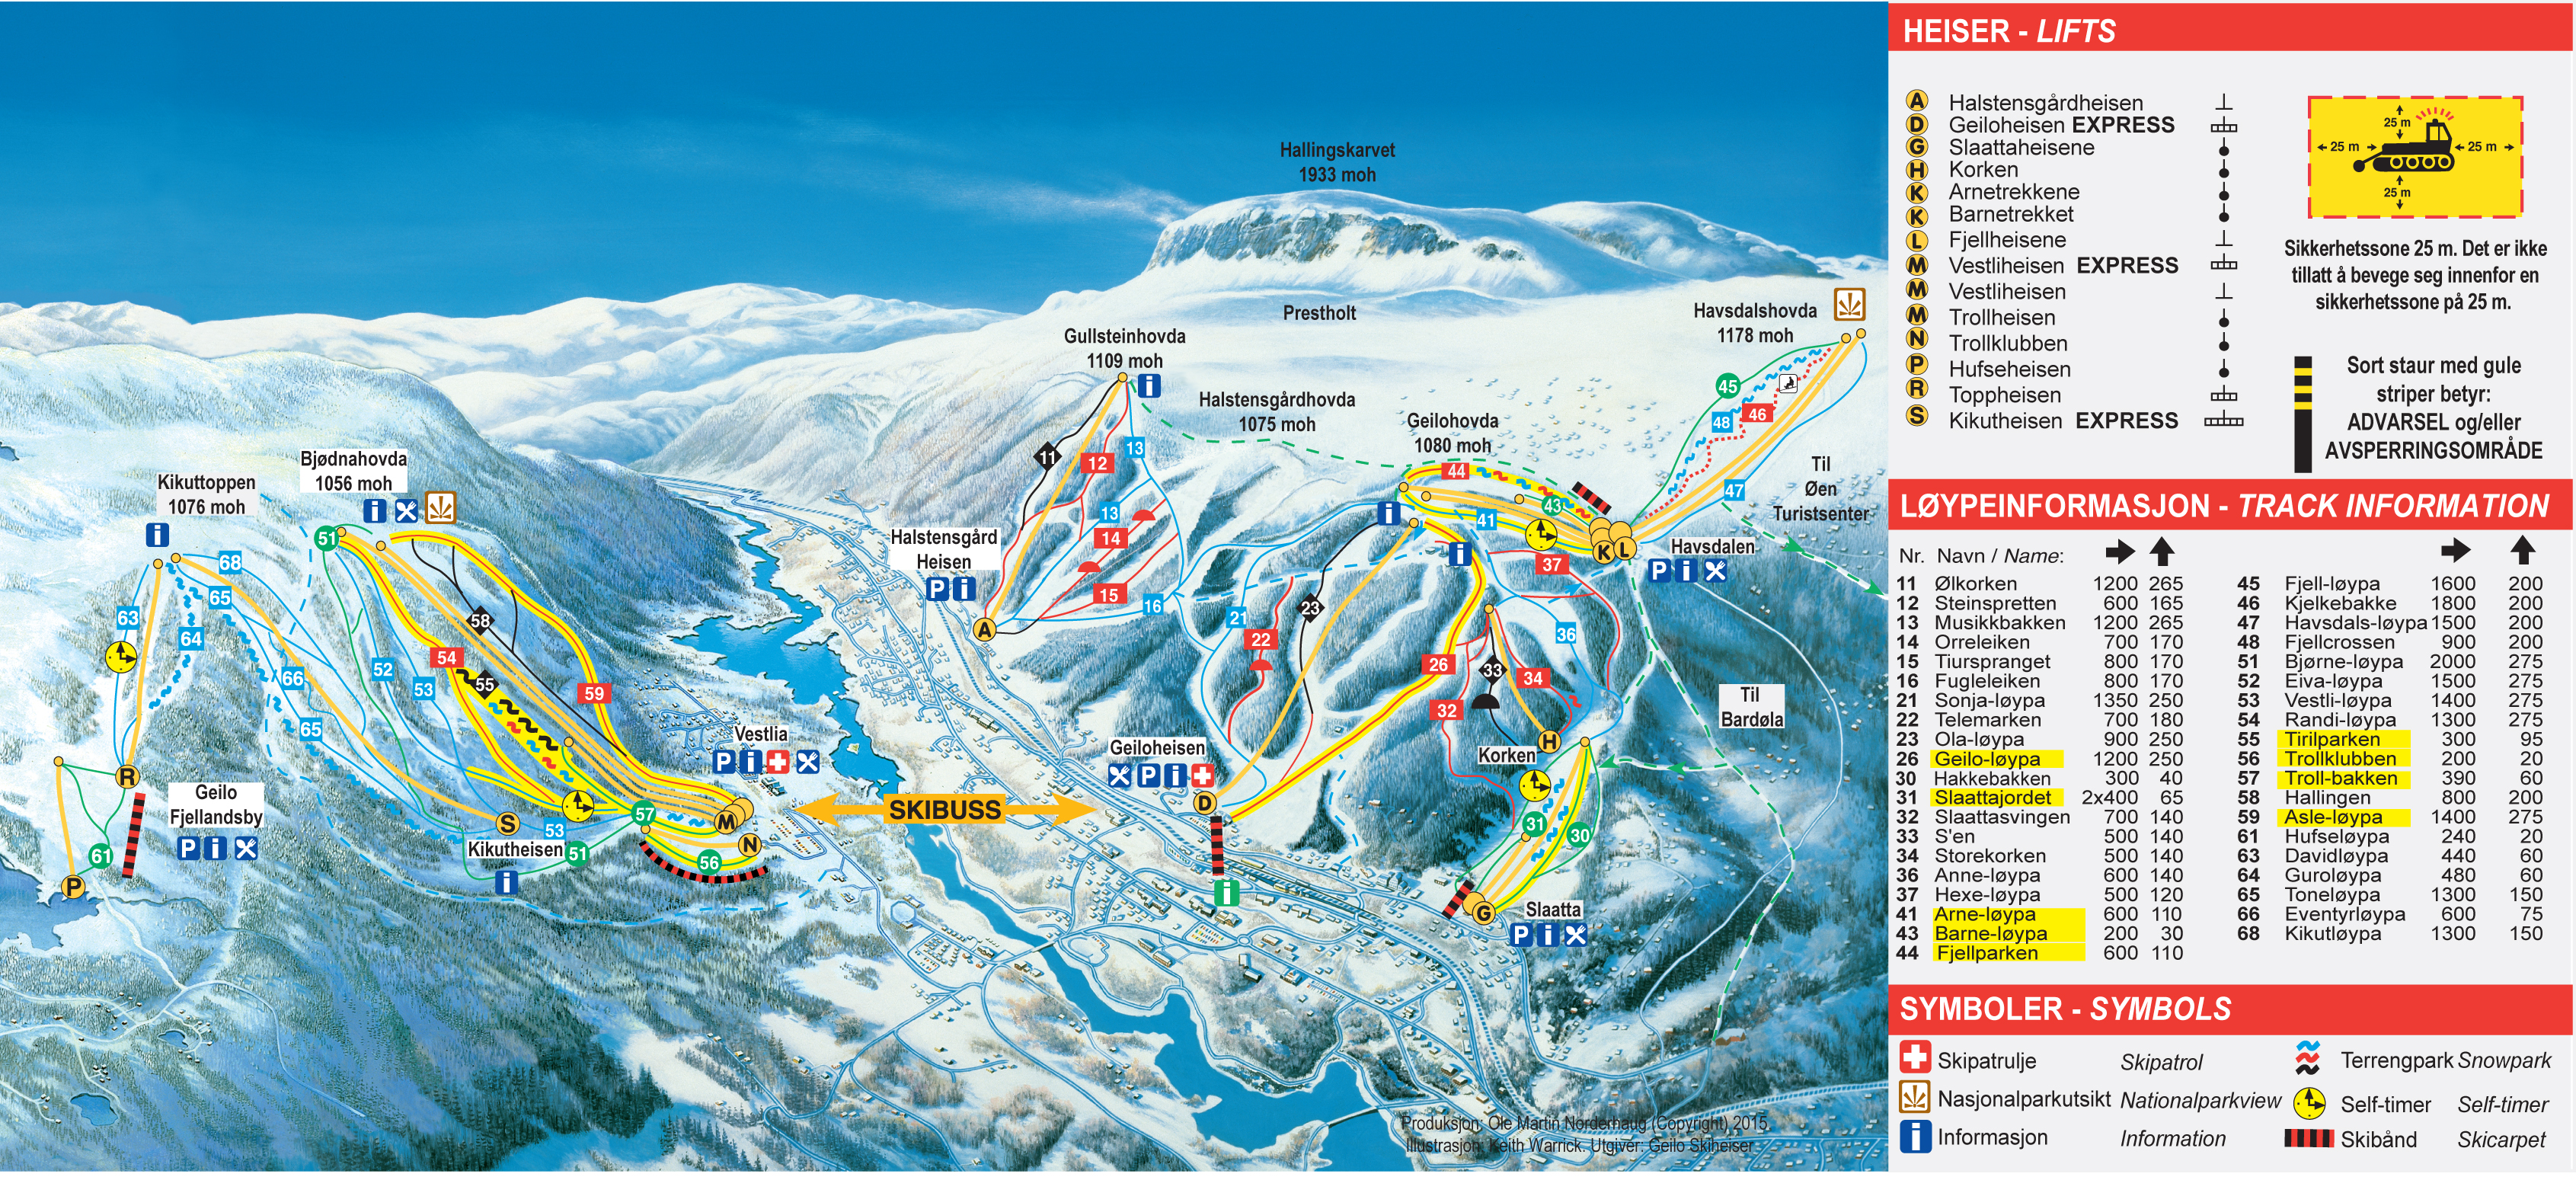 Piset Map Official Travel Guide To Norway Visitnorwaycom - Norway valdres map